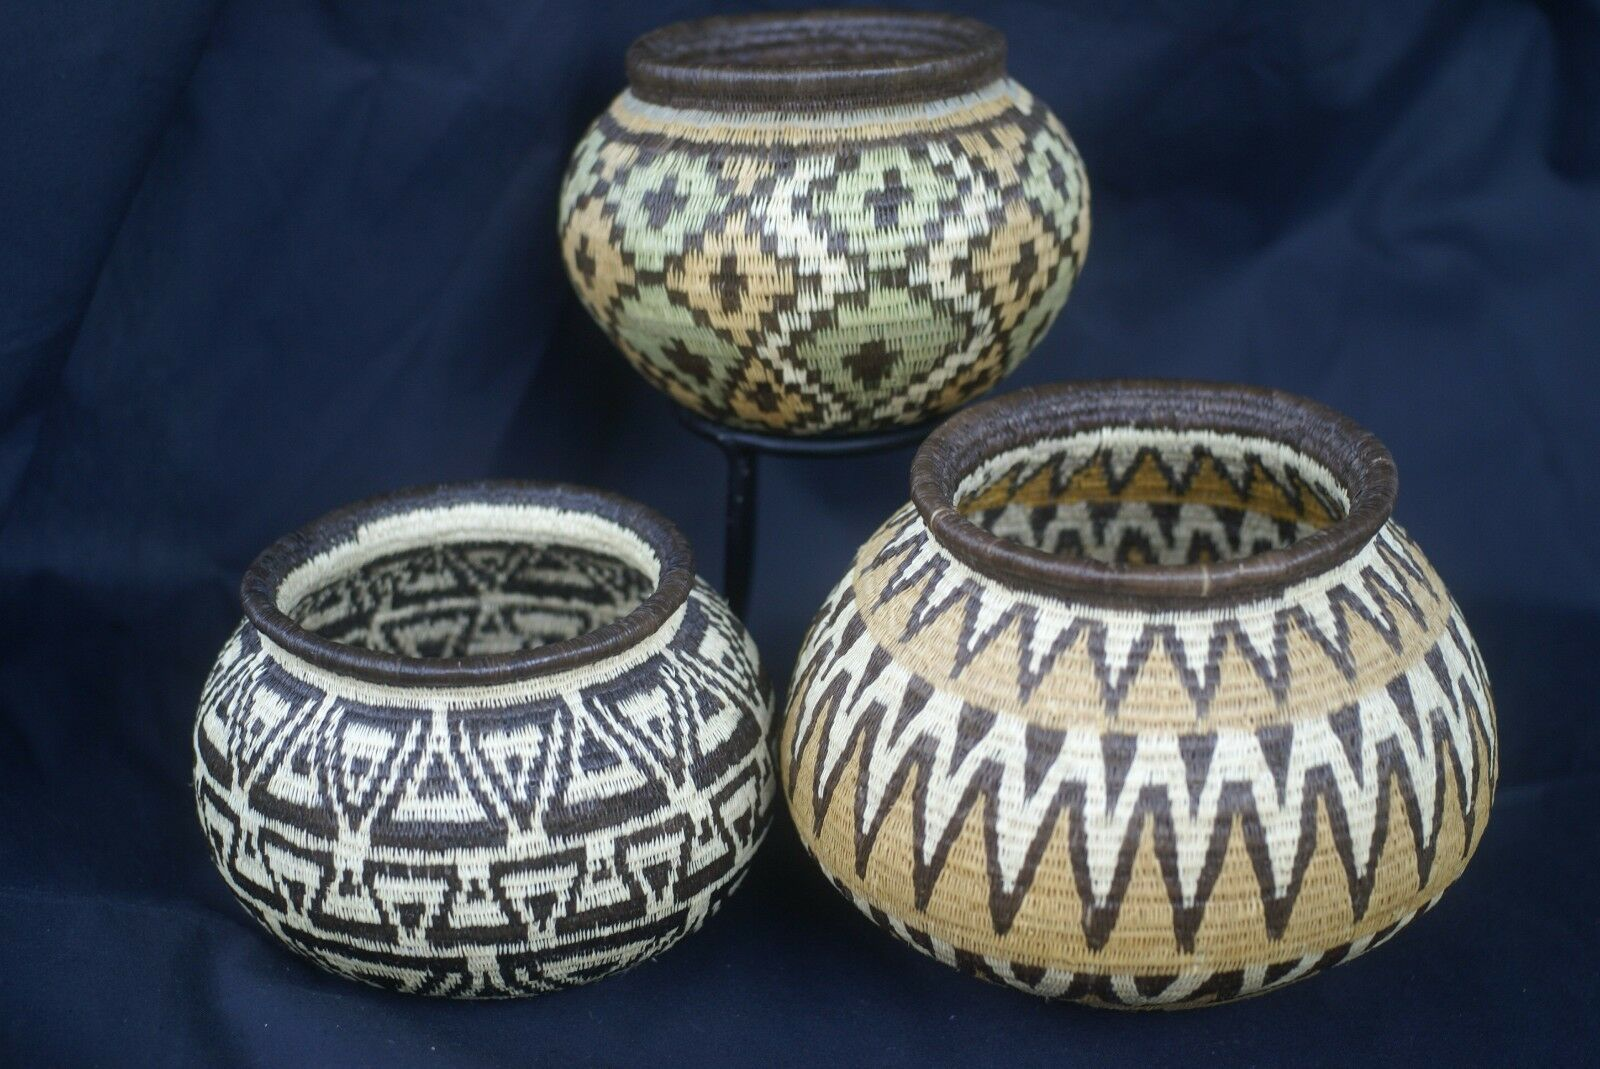 Wounaan Indian Museum Hösig Di Minute Weave Finest Art Geometric Basket 300A26 -